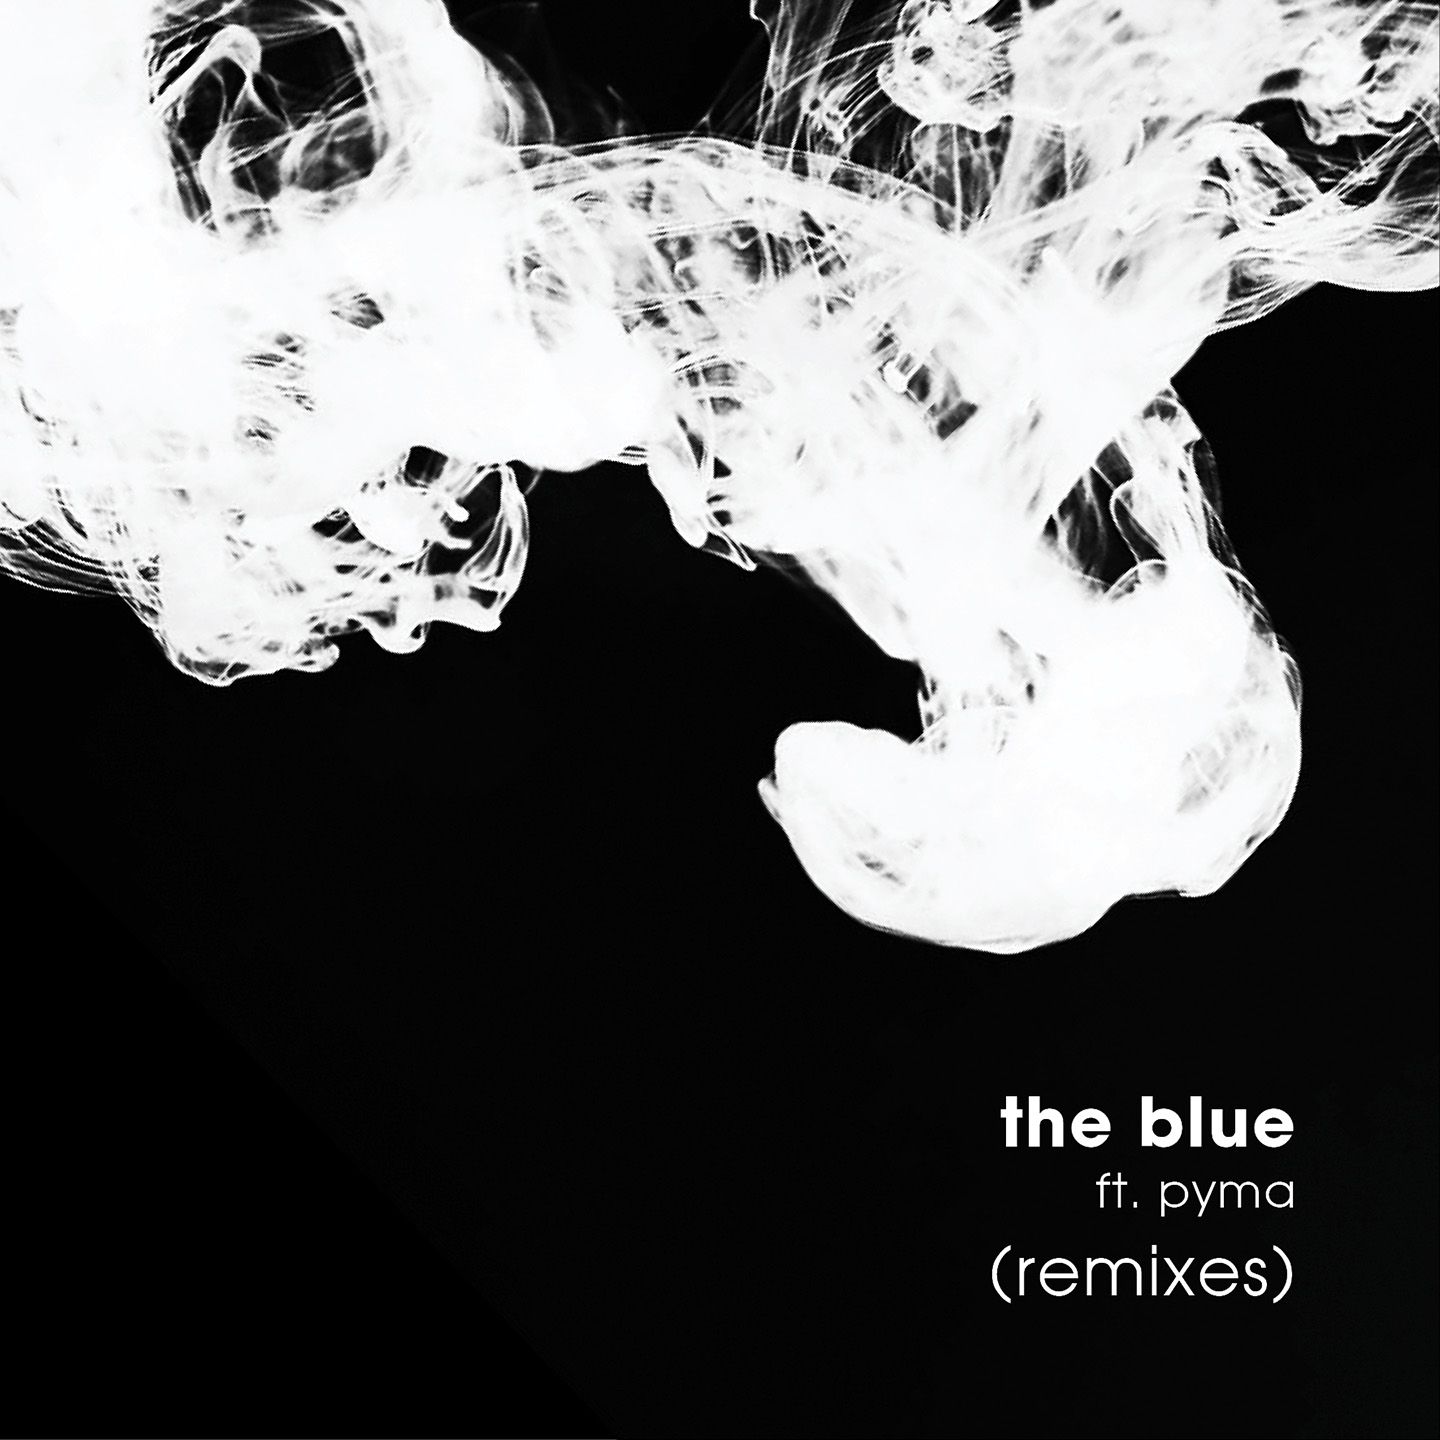 The Blue (Remixes)